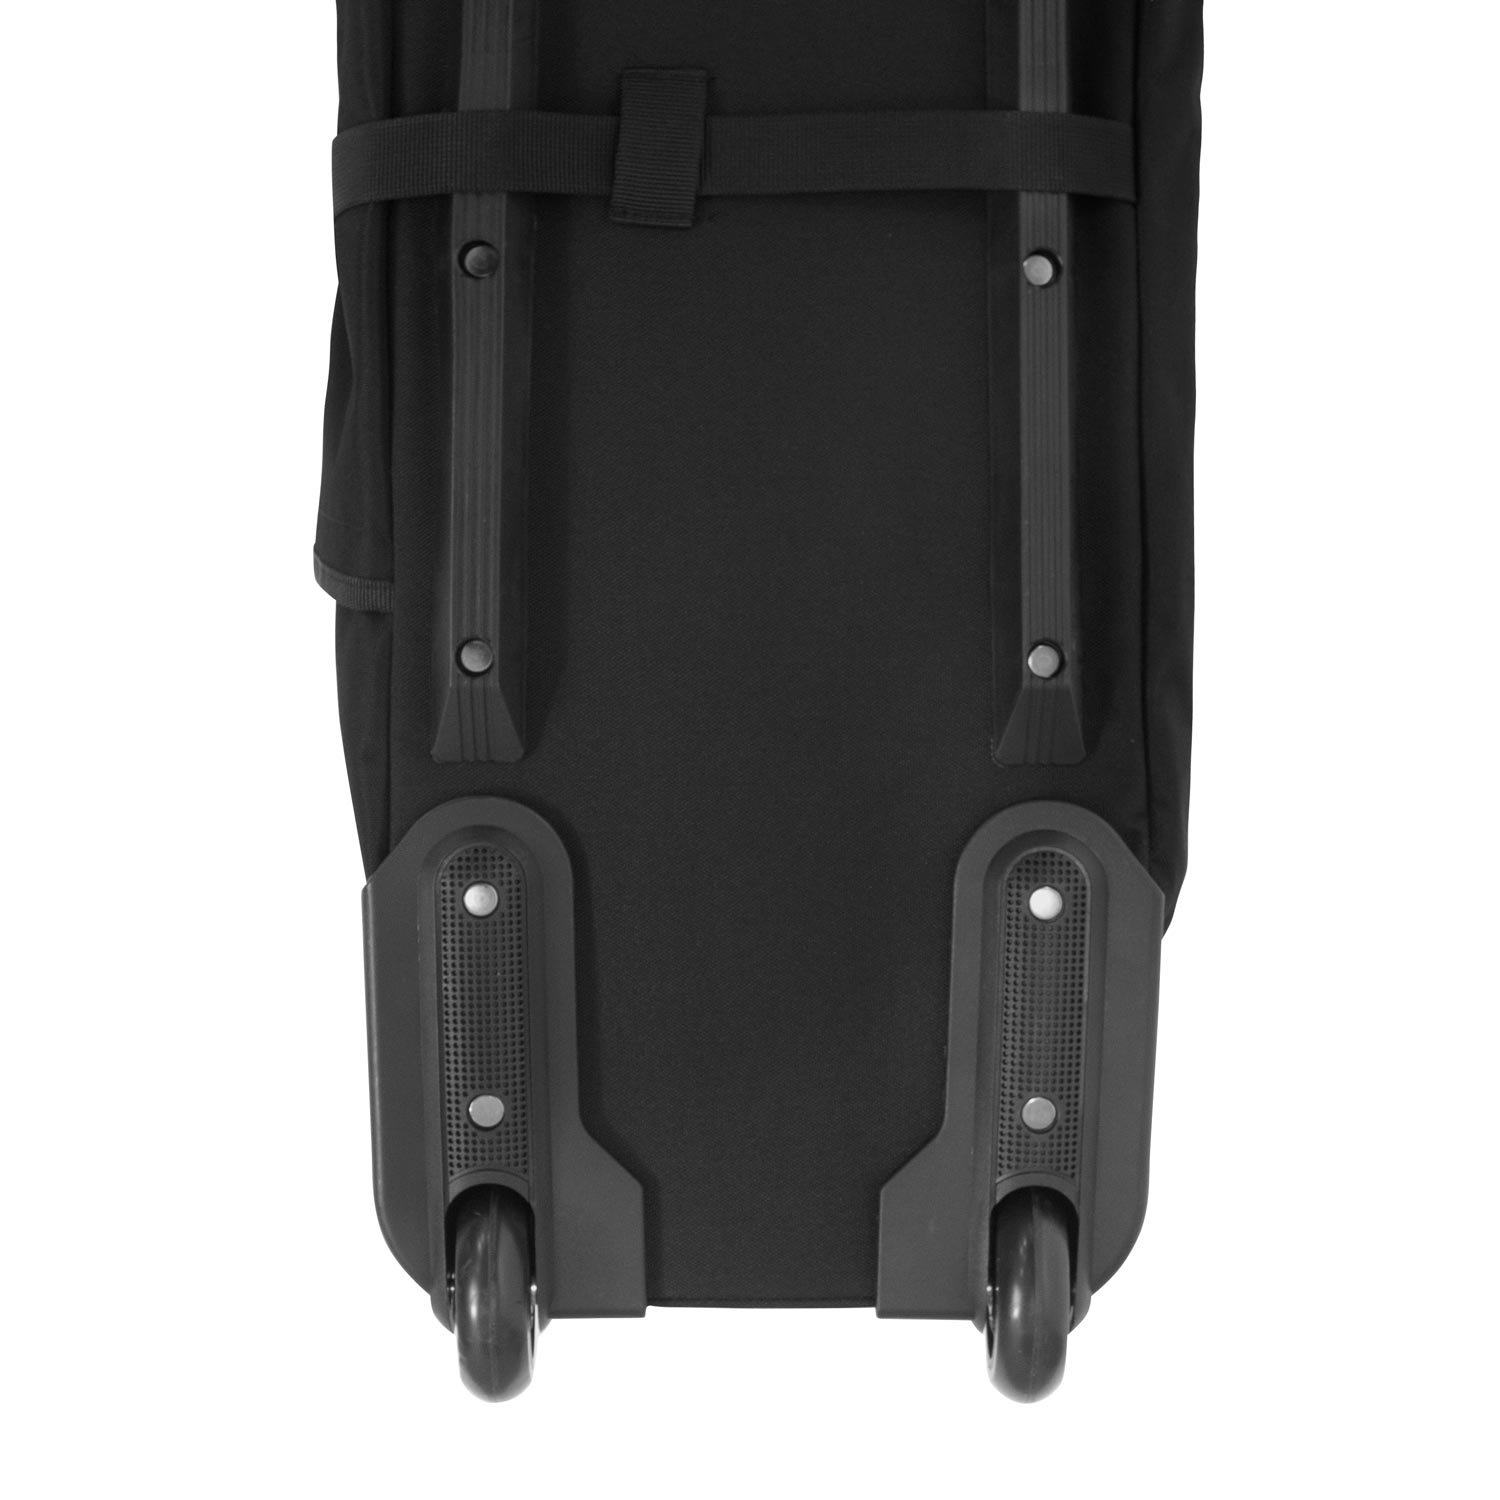 2018 Winterial Rolling Ski Bag, Travel, Winter Travel, Wheels, Protect Your Skis by Winterial (Image #6)